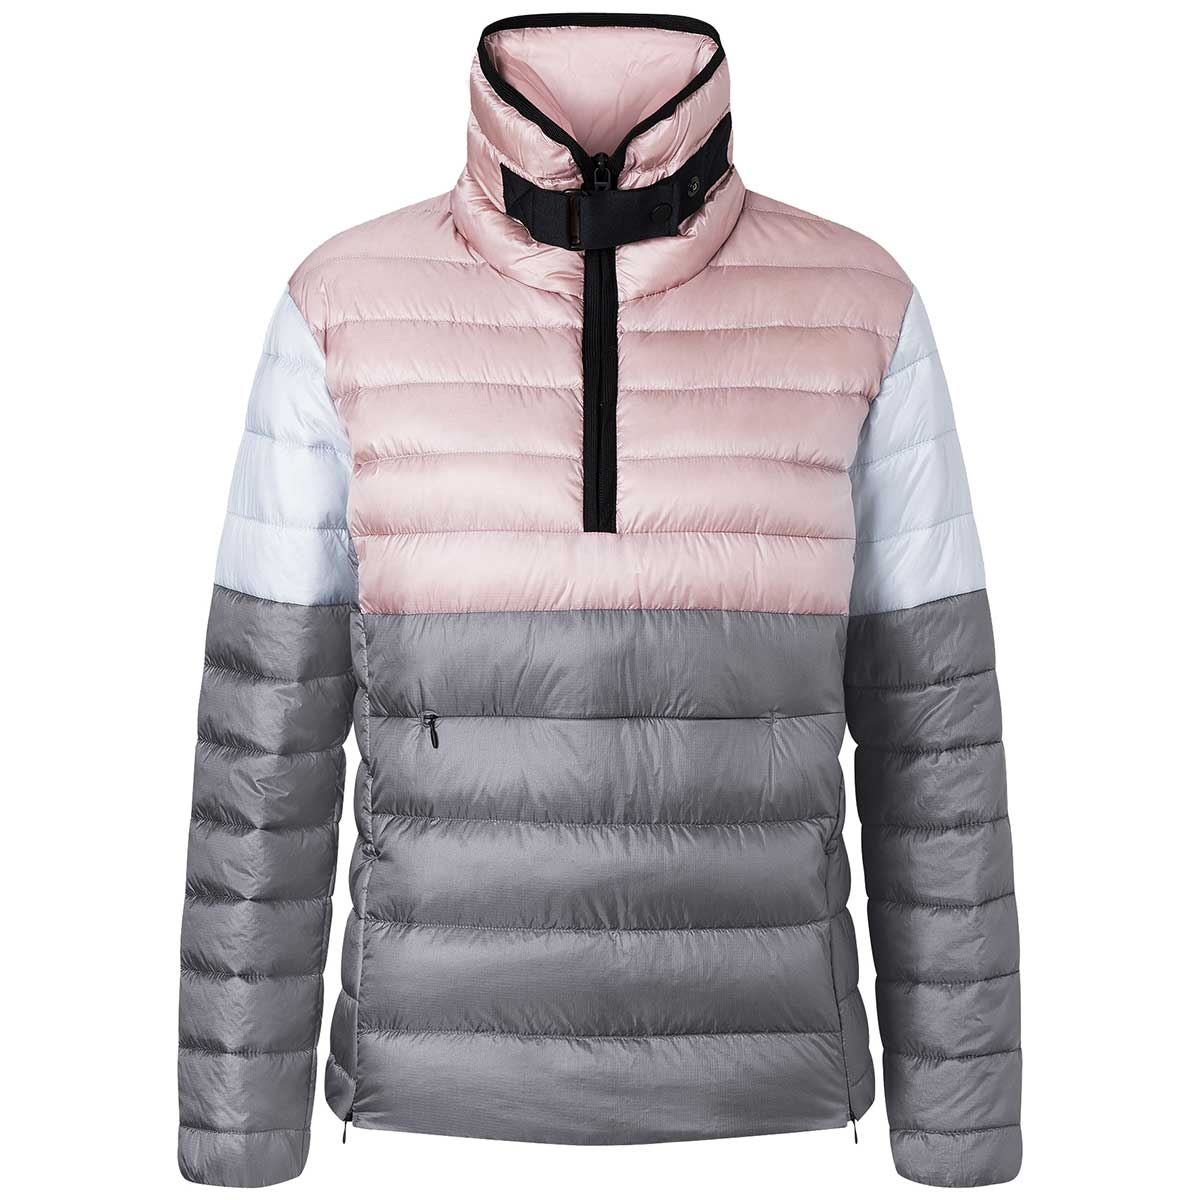 Bogner Fire+Ice Juli-D women's jacket in dusty rose and grey